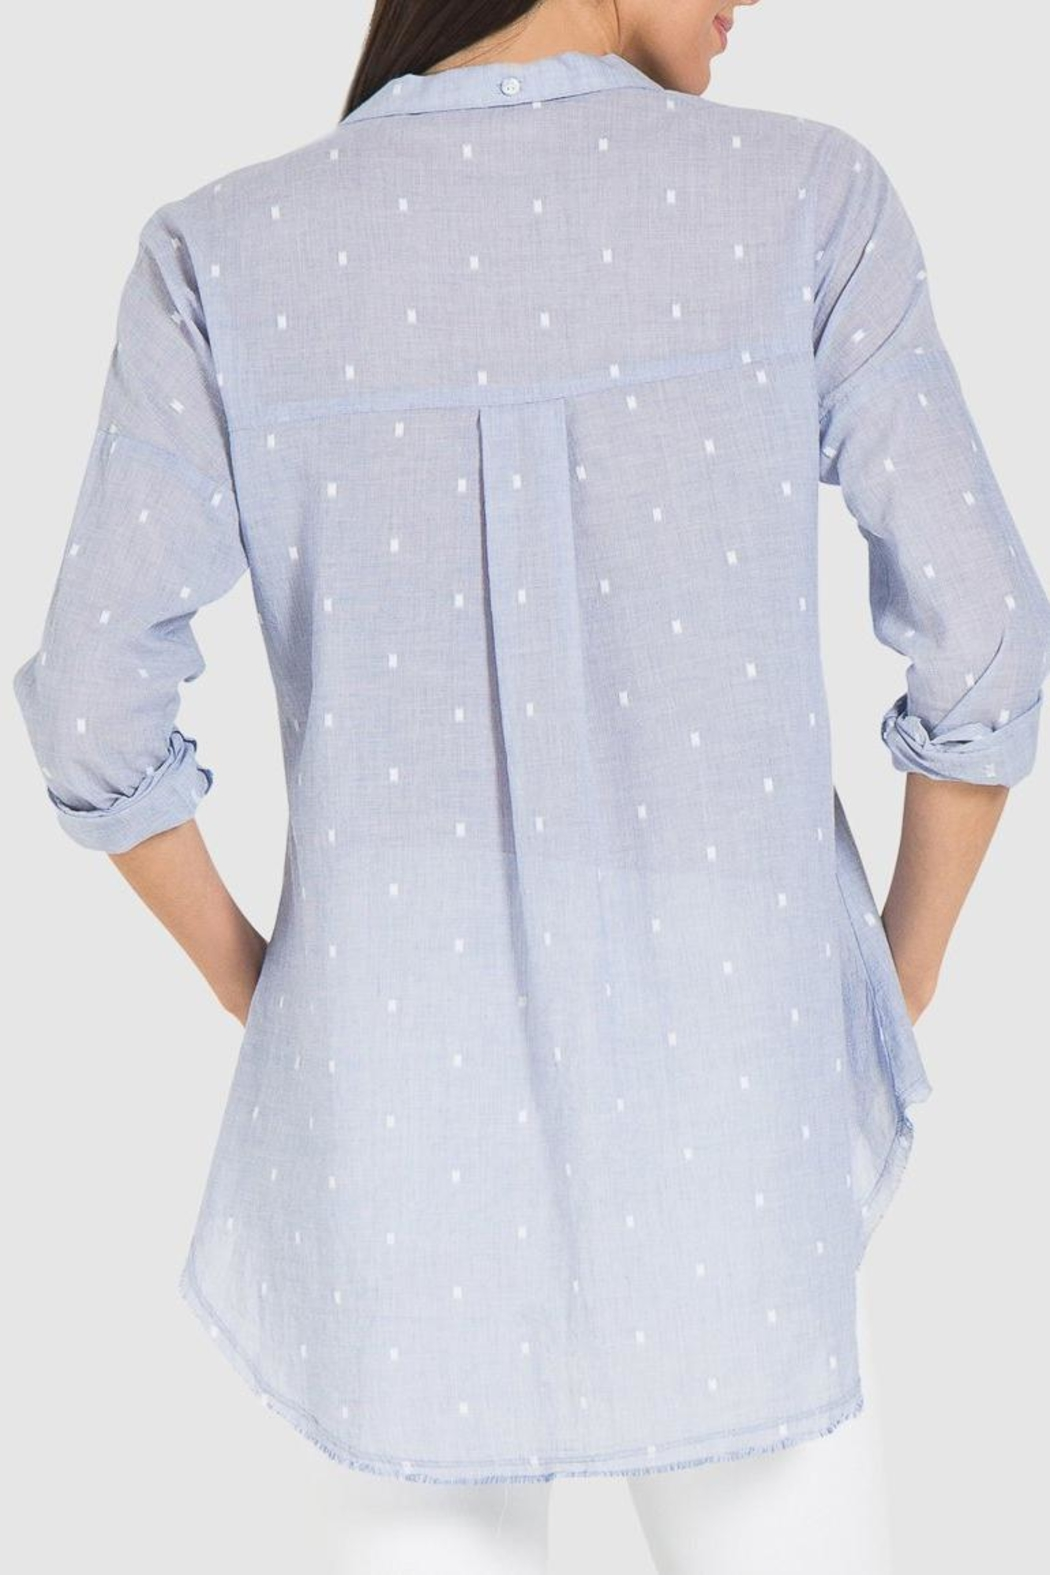 Bella Dahl High-Low Shirt - Side Cropped Image